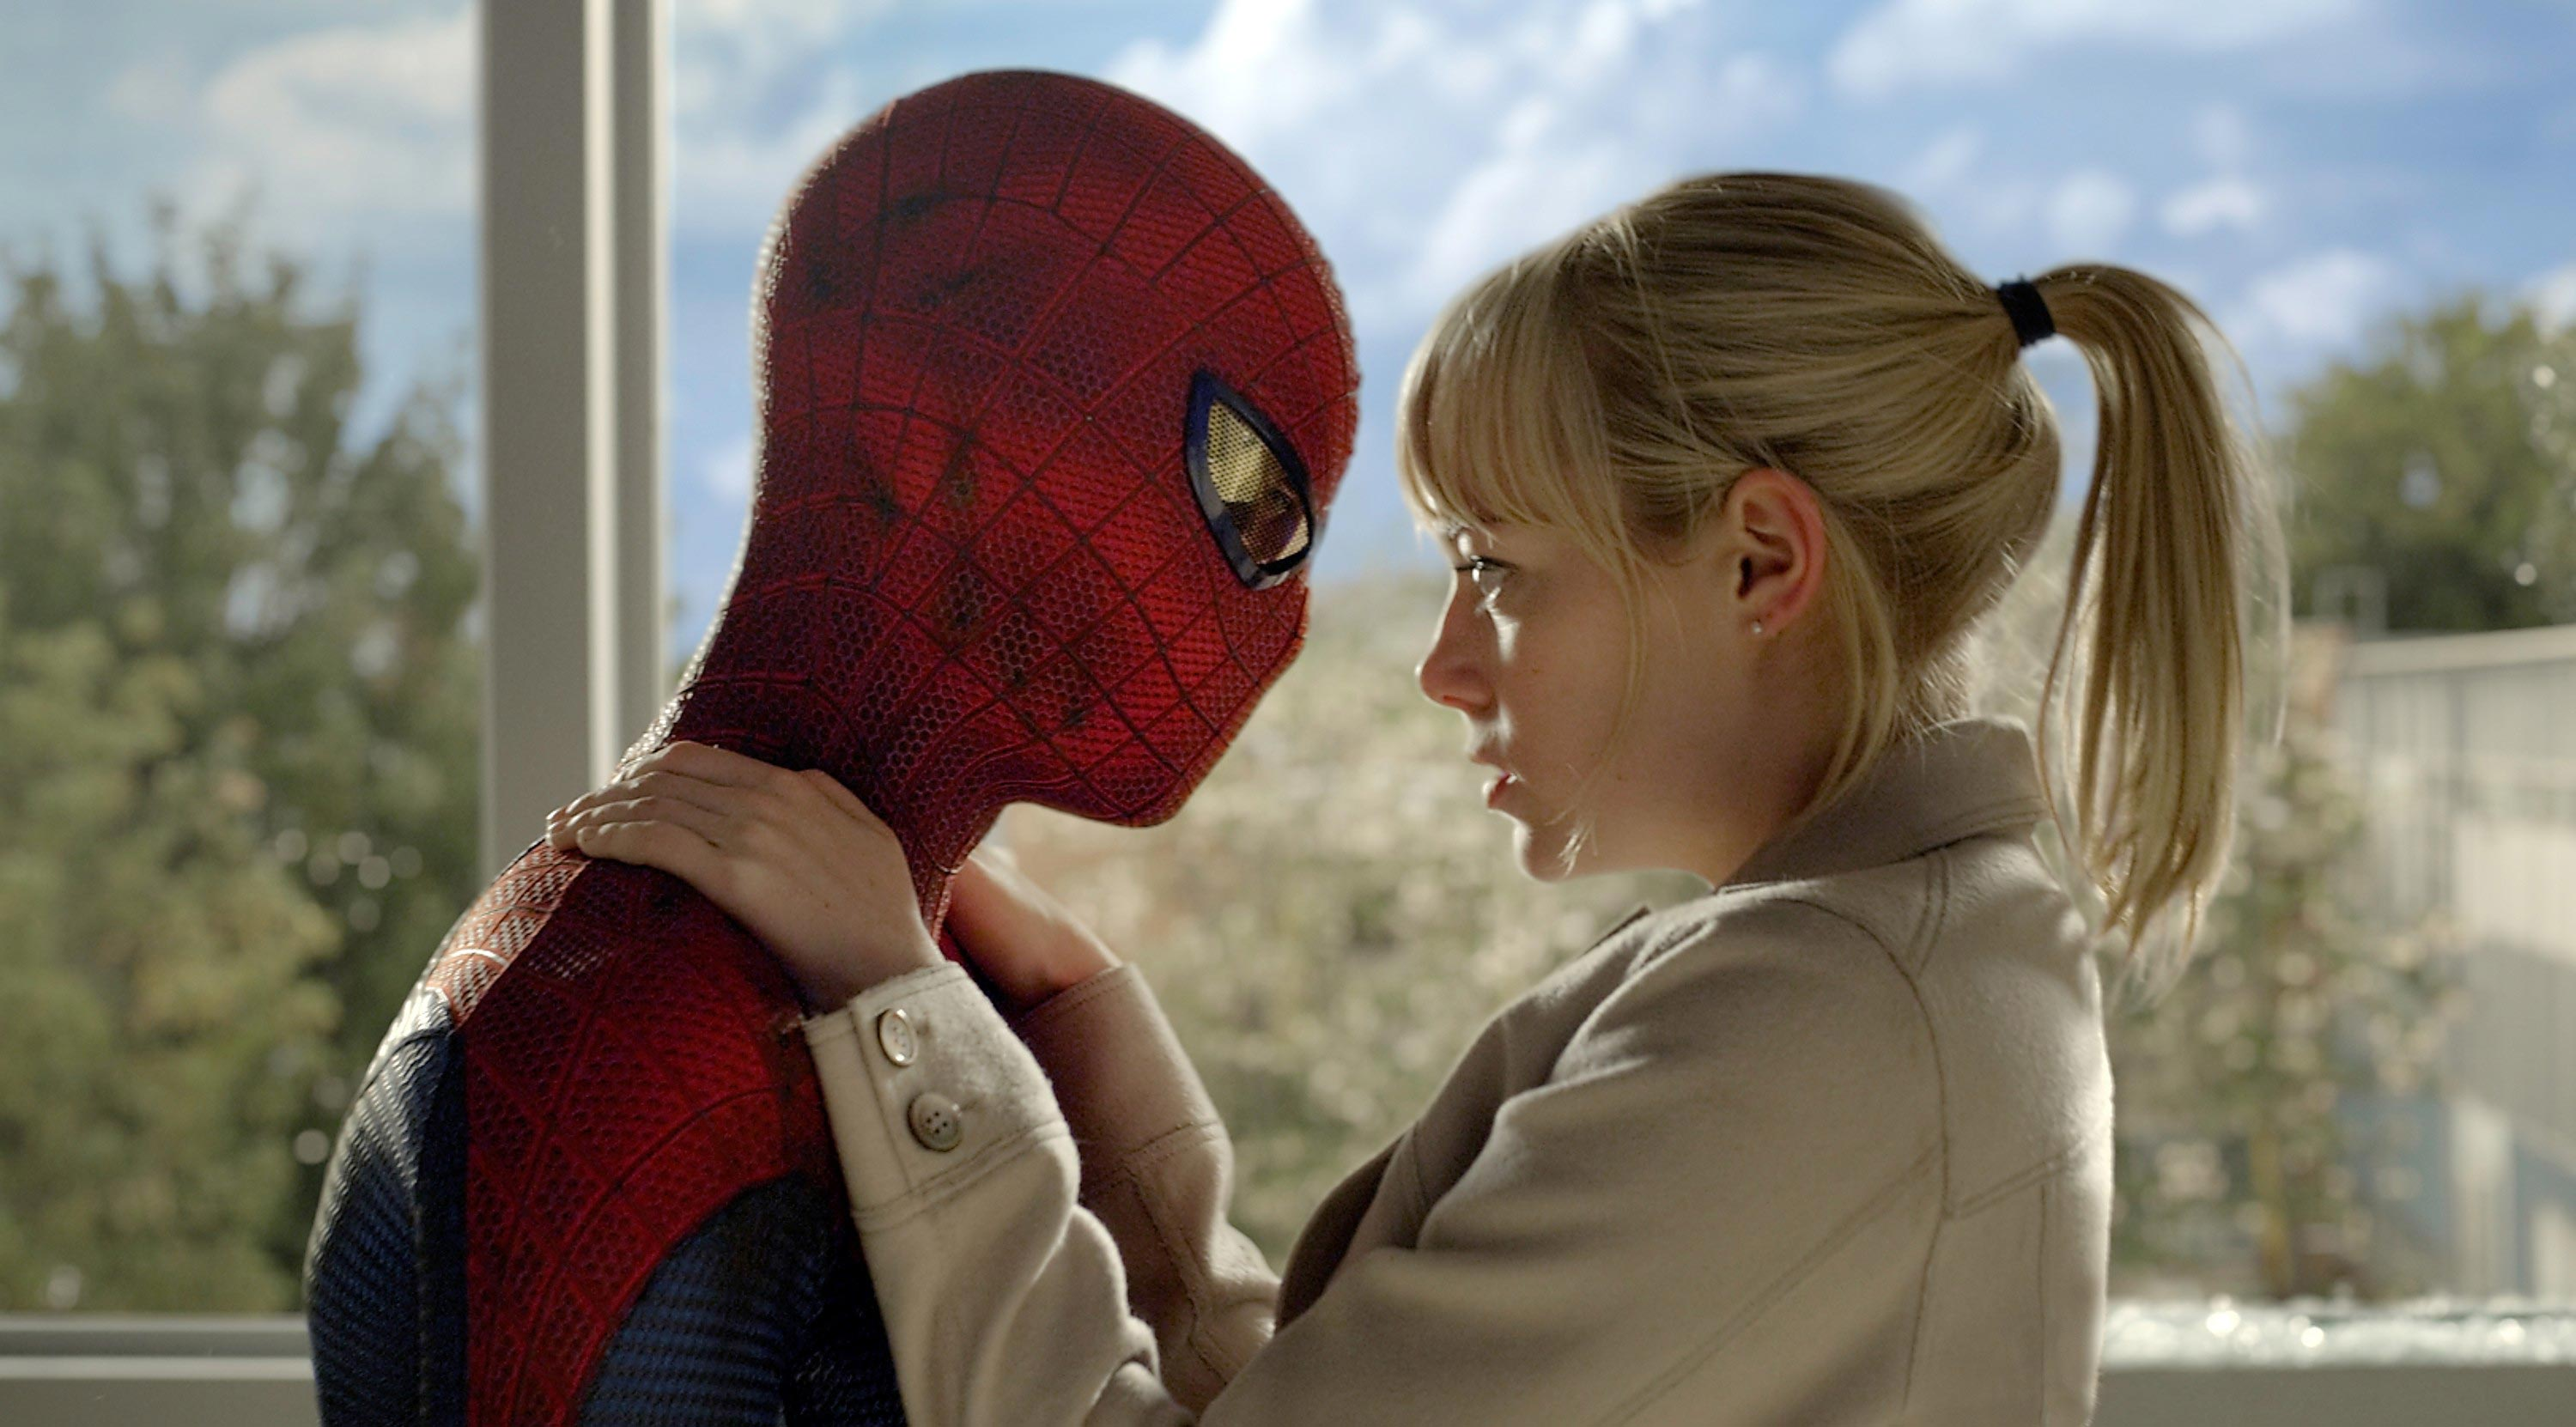 Spider-Man (Andrew Garfield) and Gwen Stacy (Emma Stone) in The Amazing Spider-Man (2012)